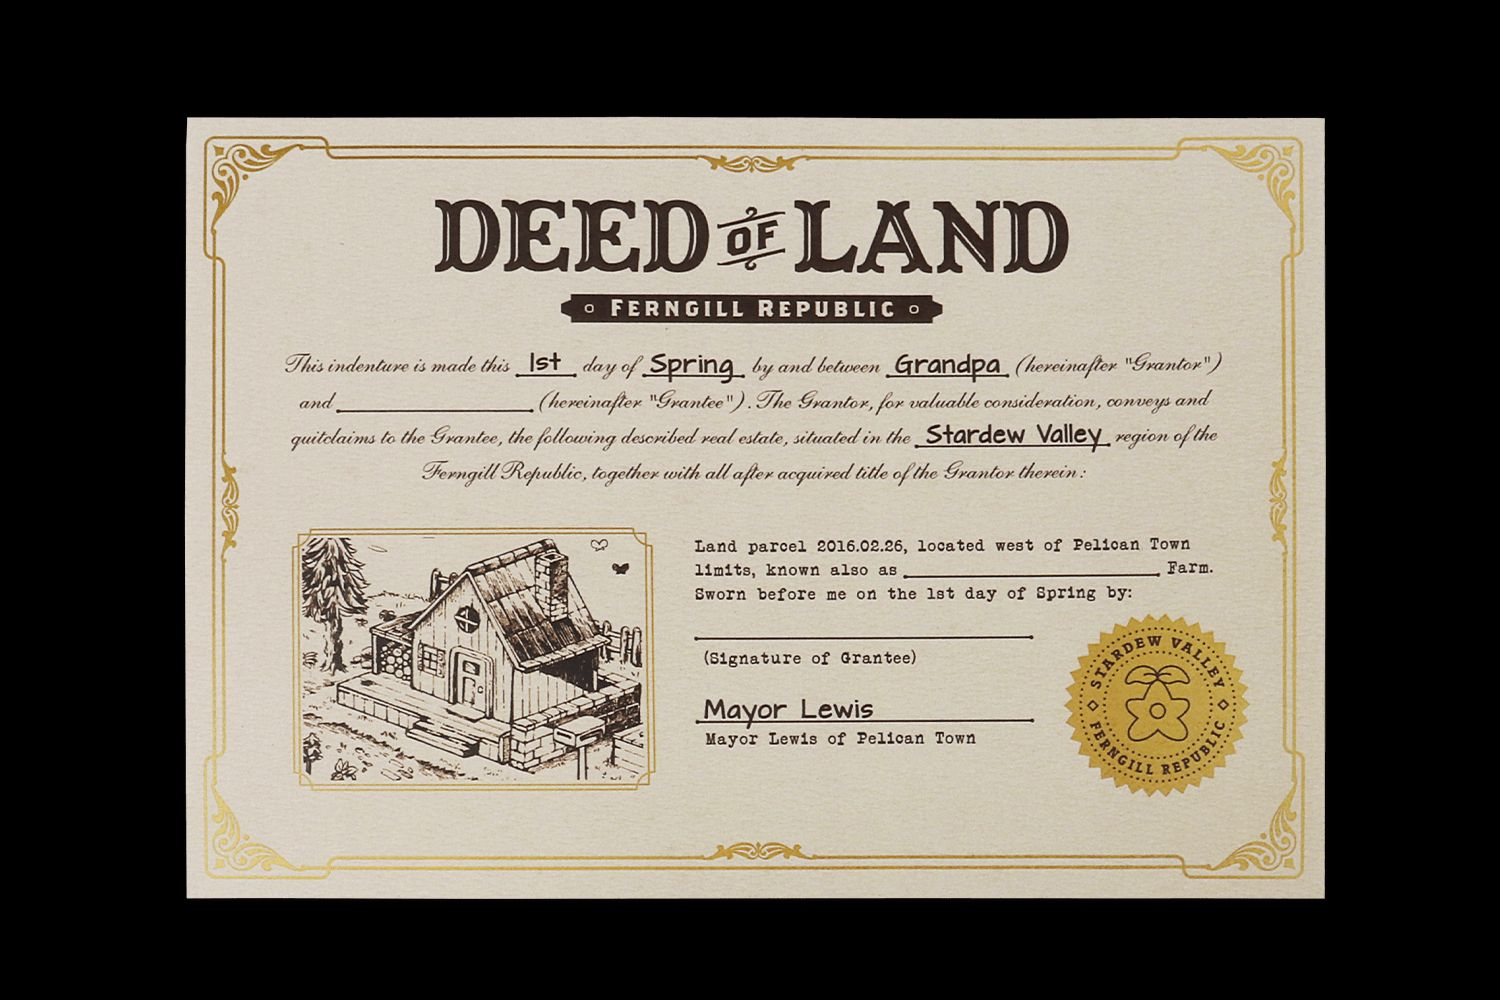 A document from the Stardew Valley physical edition  - The Deed of Land. It has gold foil edging and a gold foil stamp in the bottom right corner. It reads 'This indenture is made this 1st day of Spring by and between Grandpa (hereinafter 'Grantor') and - followed by a blank space for your name - (hereinafter 'Grantee'). The Grantor, for valuable consideration, conveys and quitclaims to the Grantee, the following described real estate situated in the Stardew Valley region of the Ferngill Republic, together with all after acquired title of the Grantor therein: Land parcel 2016.02.26 located west of Pelican Town limits, know also as - blank space for farm name. Sworn before me on the 1st day of Spring'. It is signed by Mayor Lewis.